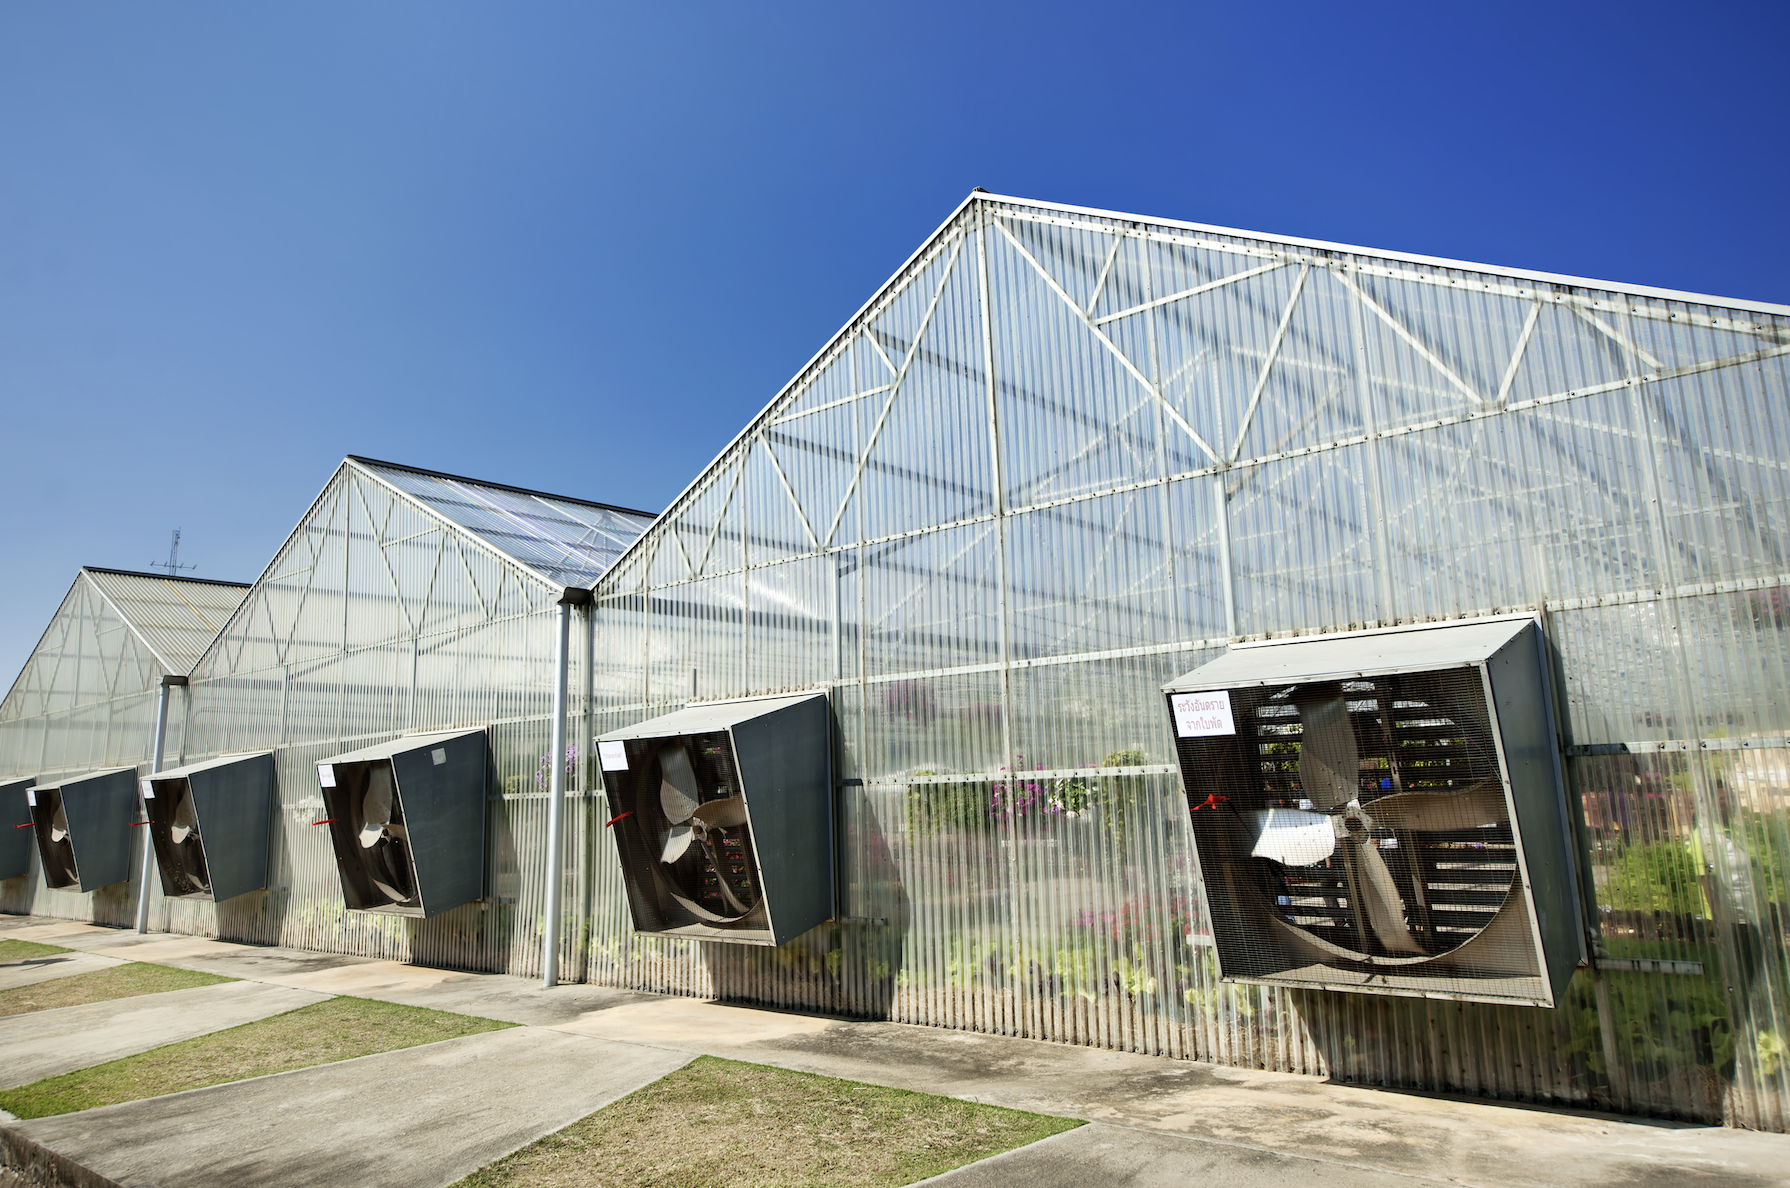 Infographic: Controlling Humidity and Climate in Greenhouses